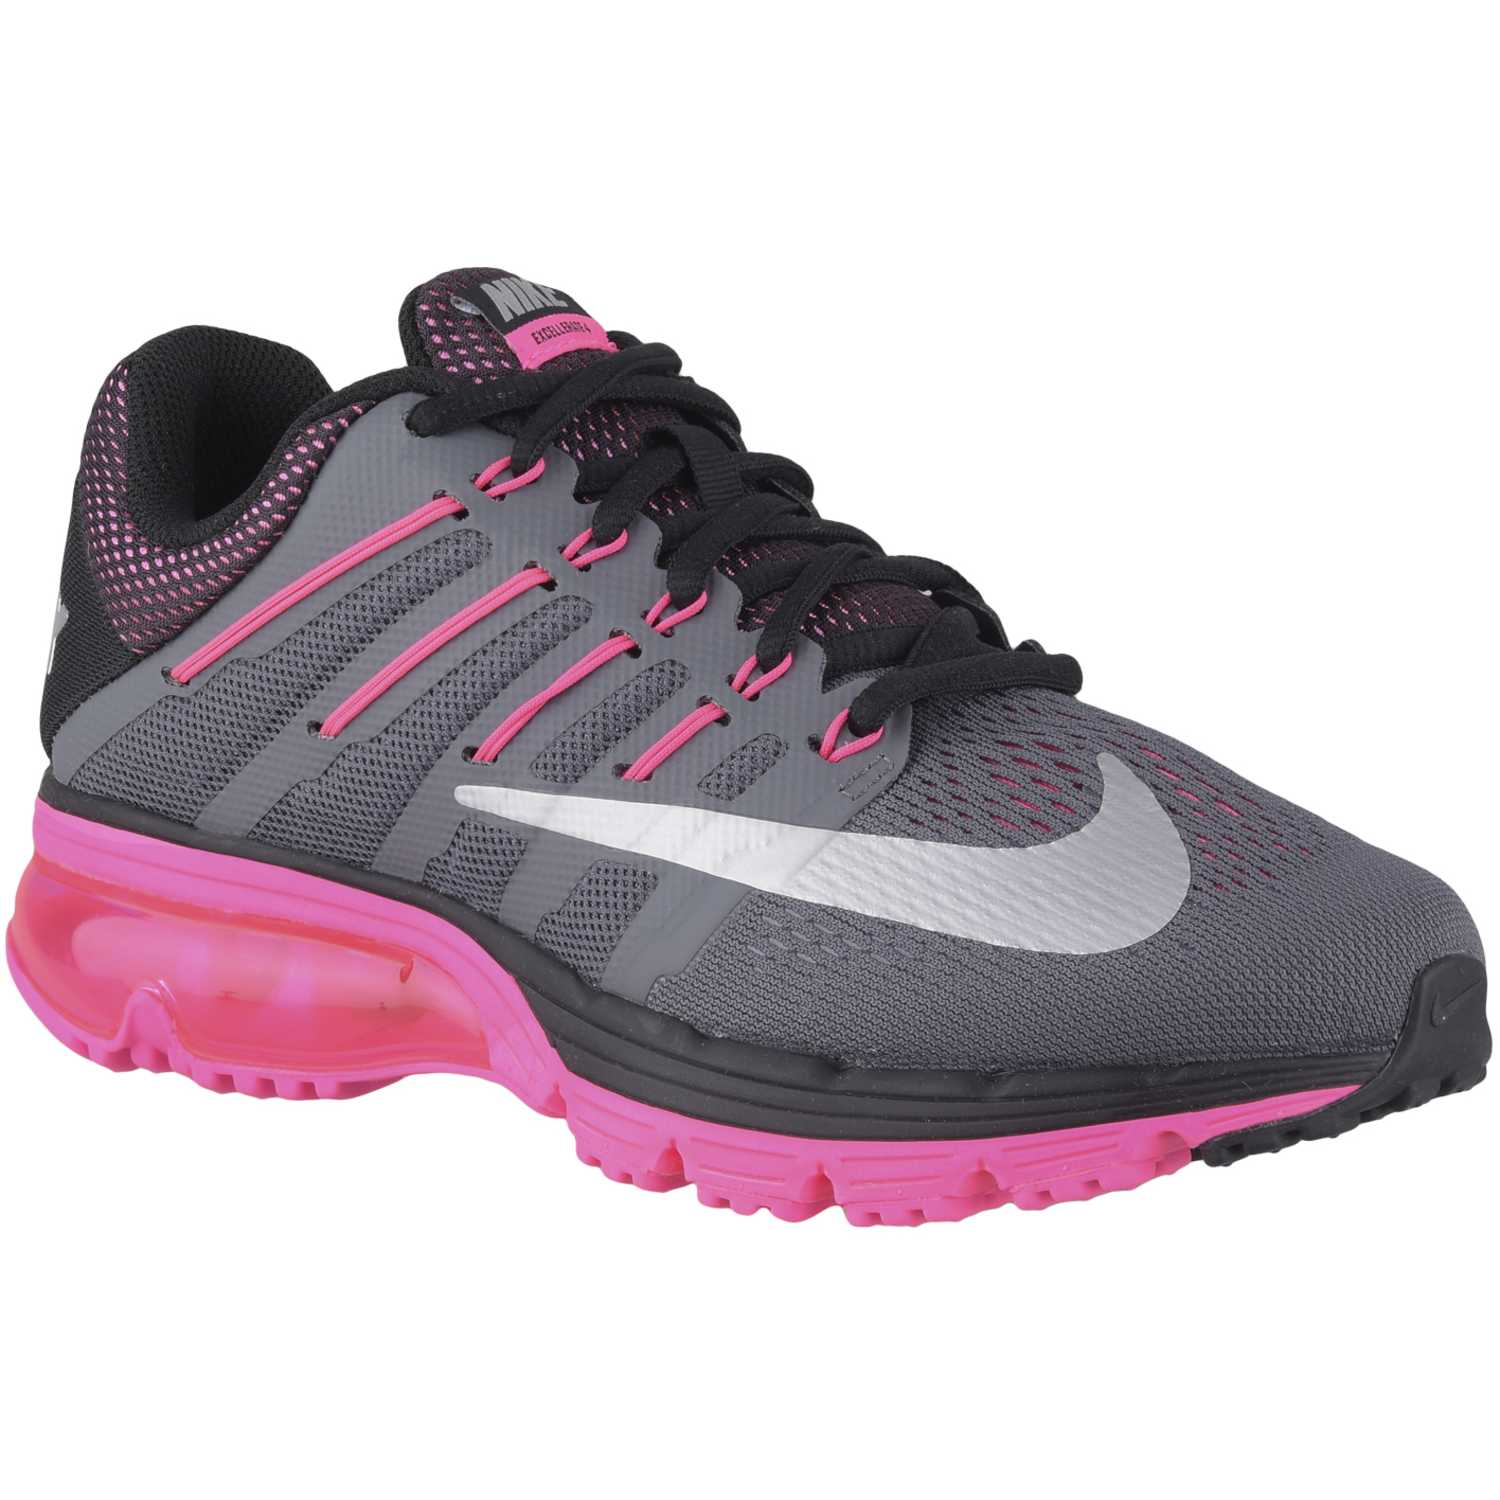 official photos 81bdf 7ba9a Zapatilla de Mujer Nike Negro / rosado wmns air max excellerate 4 ...